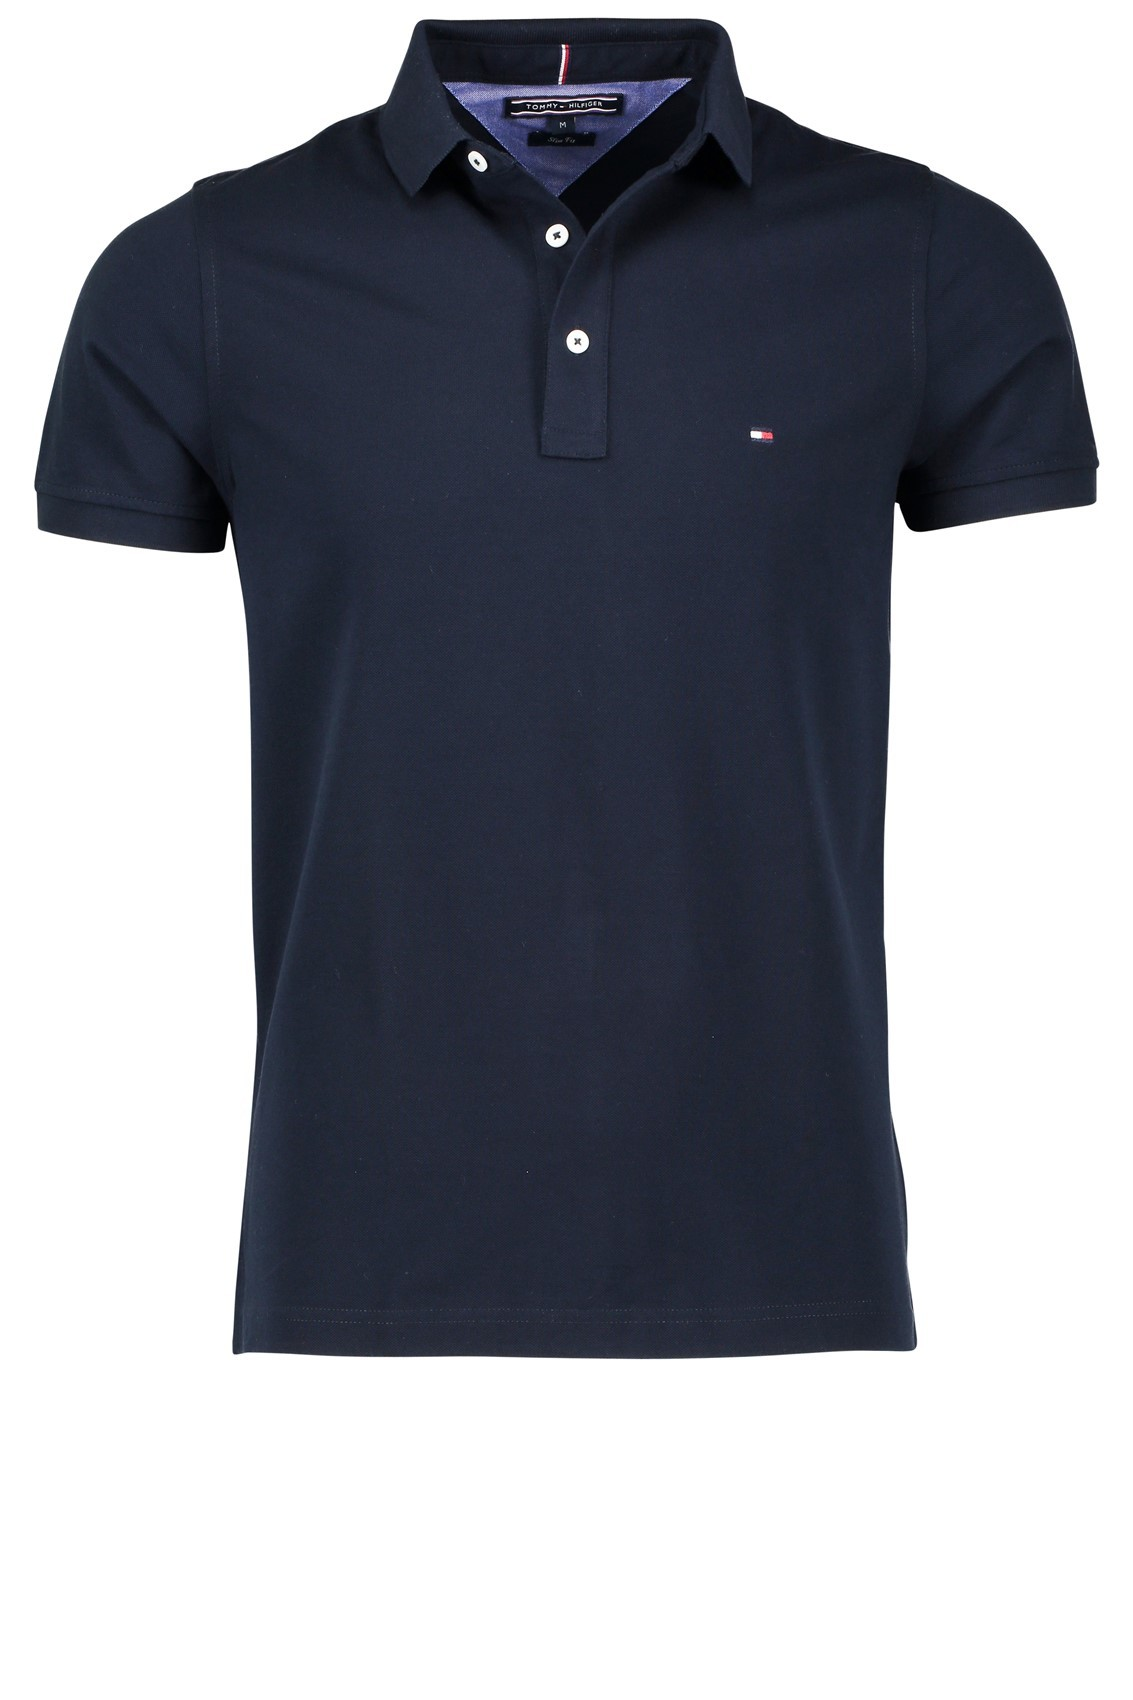 Poloshirt Tommy Hilfiger donkerblauw slim fit